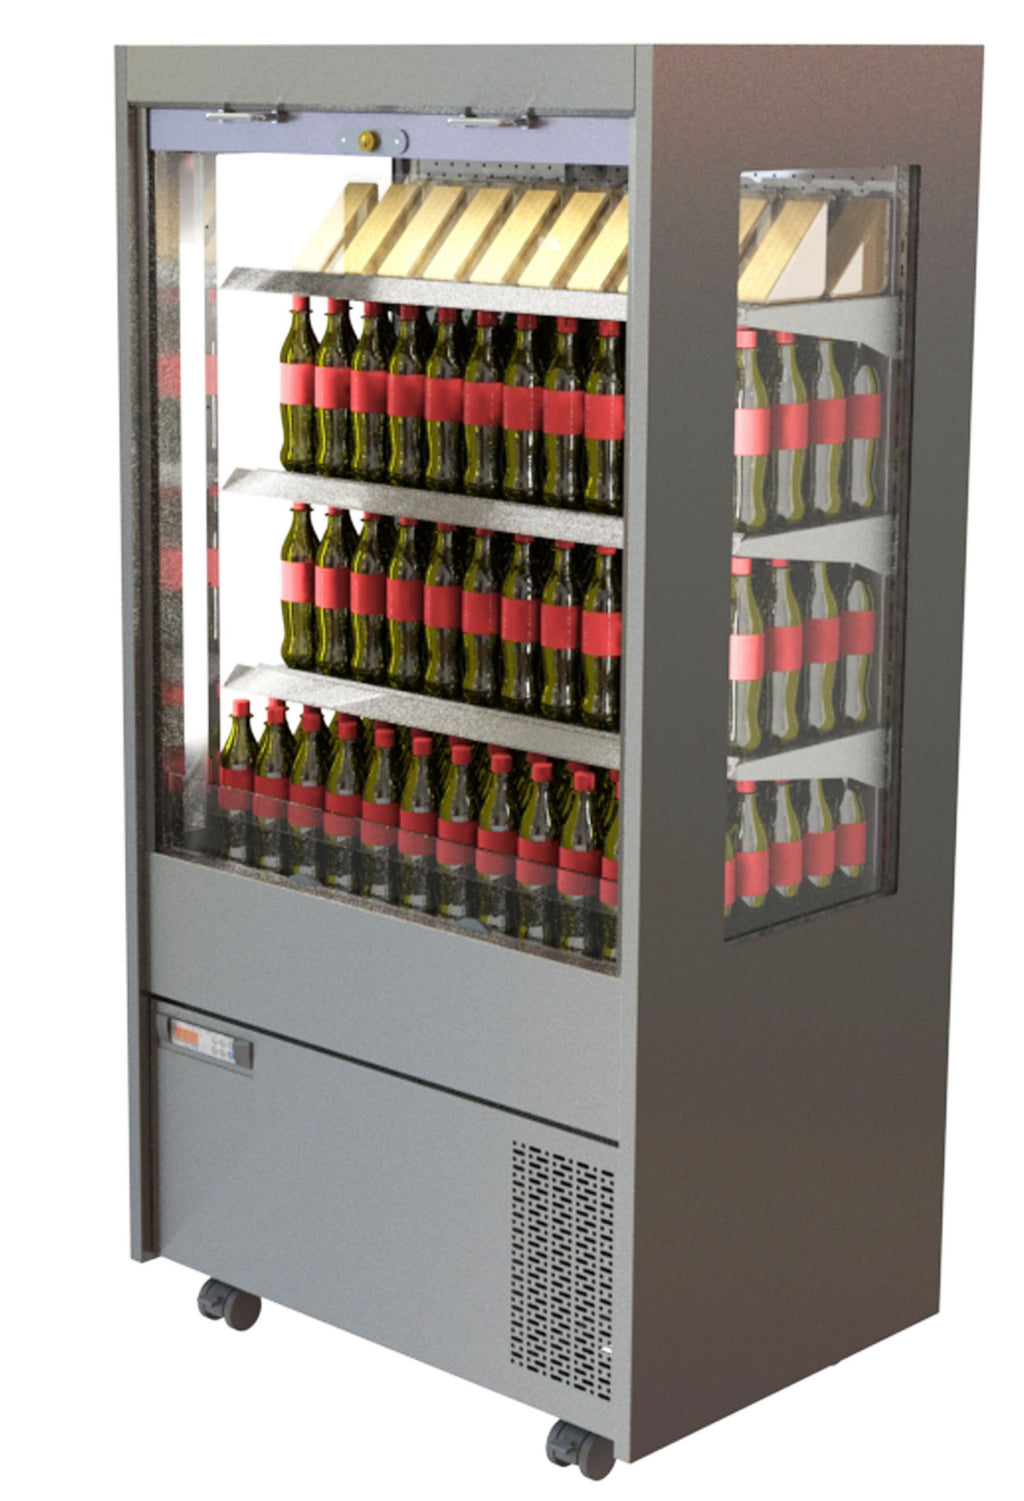 CED Chilled Multideck MM1800SRHT (With Panoramic glazed side panels)